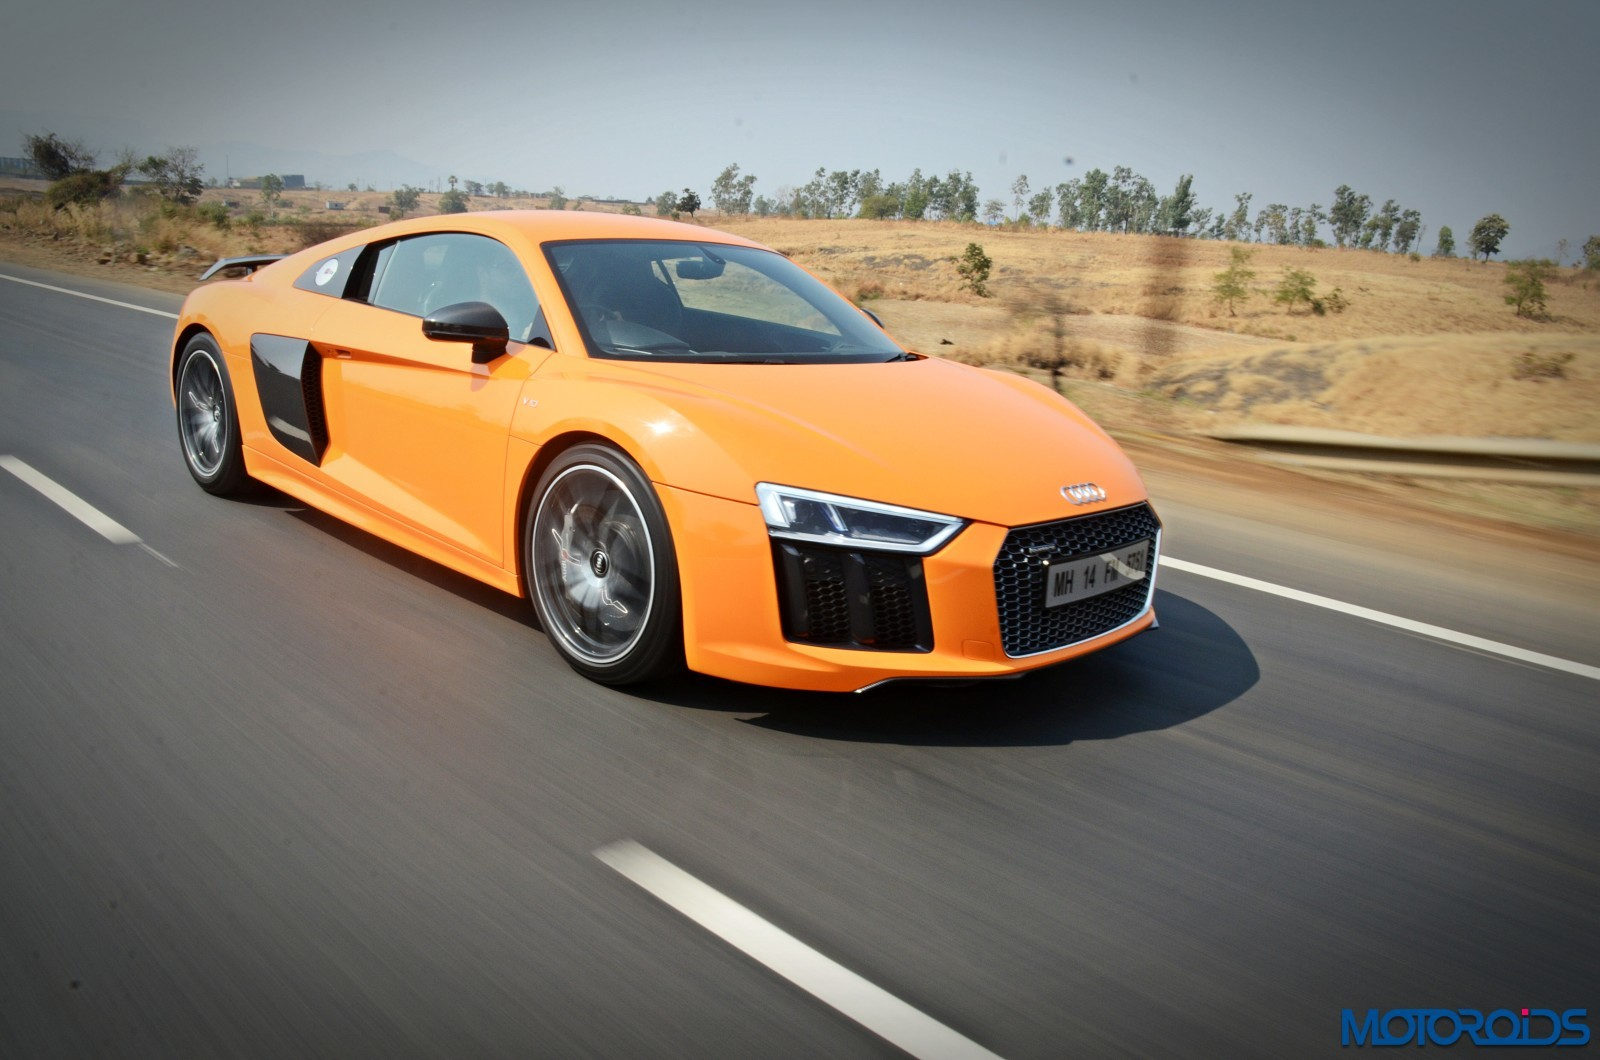 american consumer reports magazine names audi the best